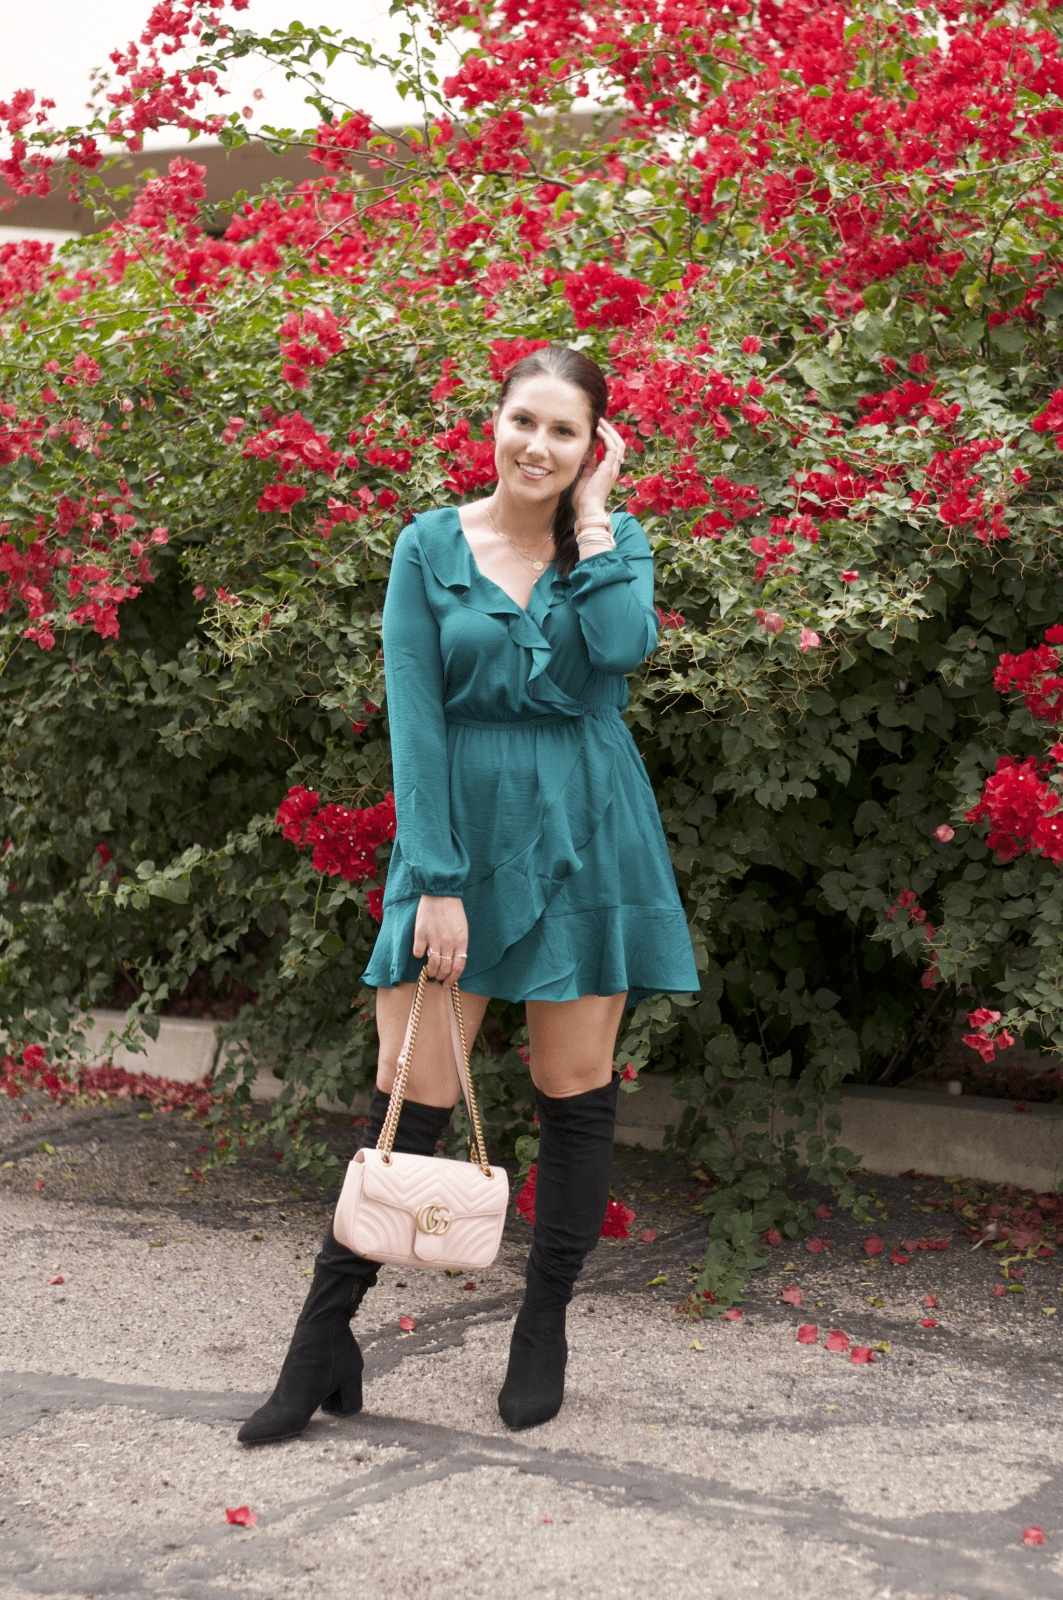 This is a full body shot of me in a teal dress from Express, with OTK boots and my pink Gucci bag.